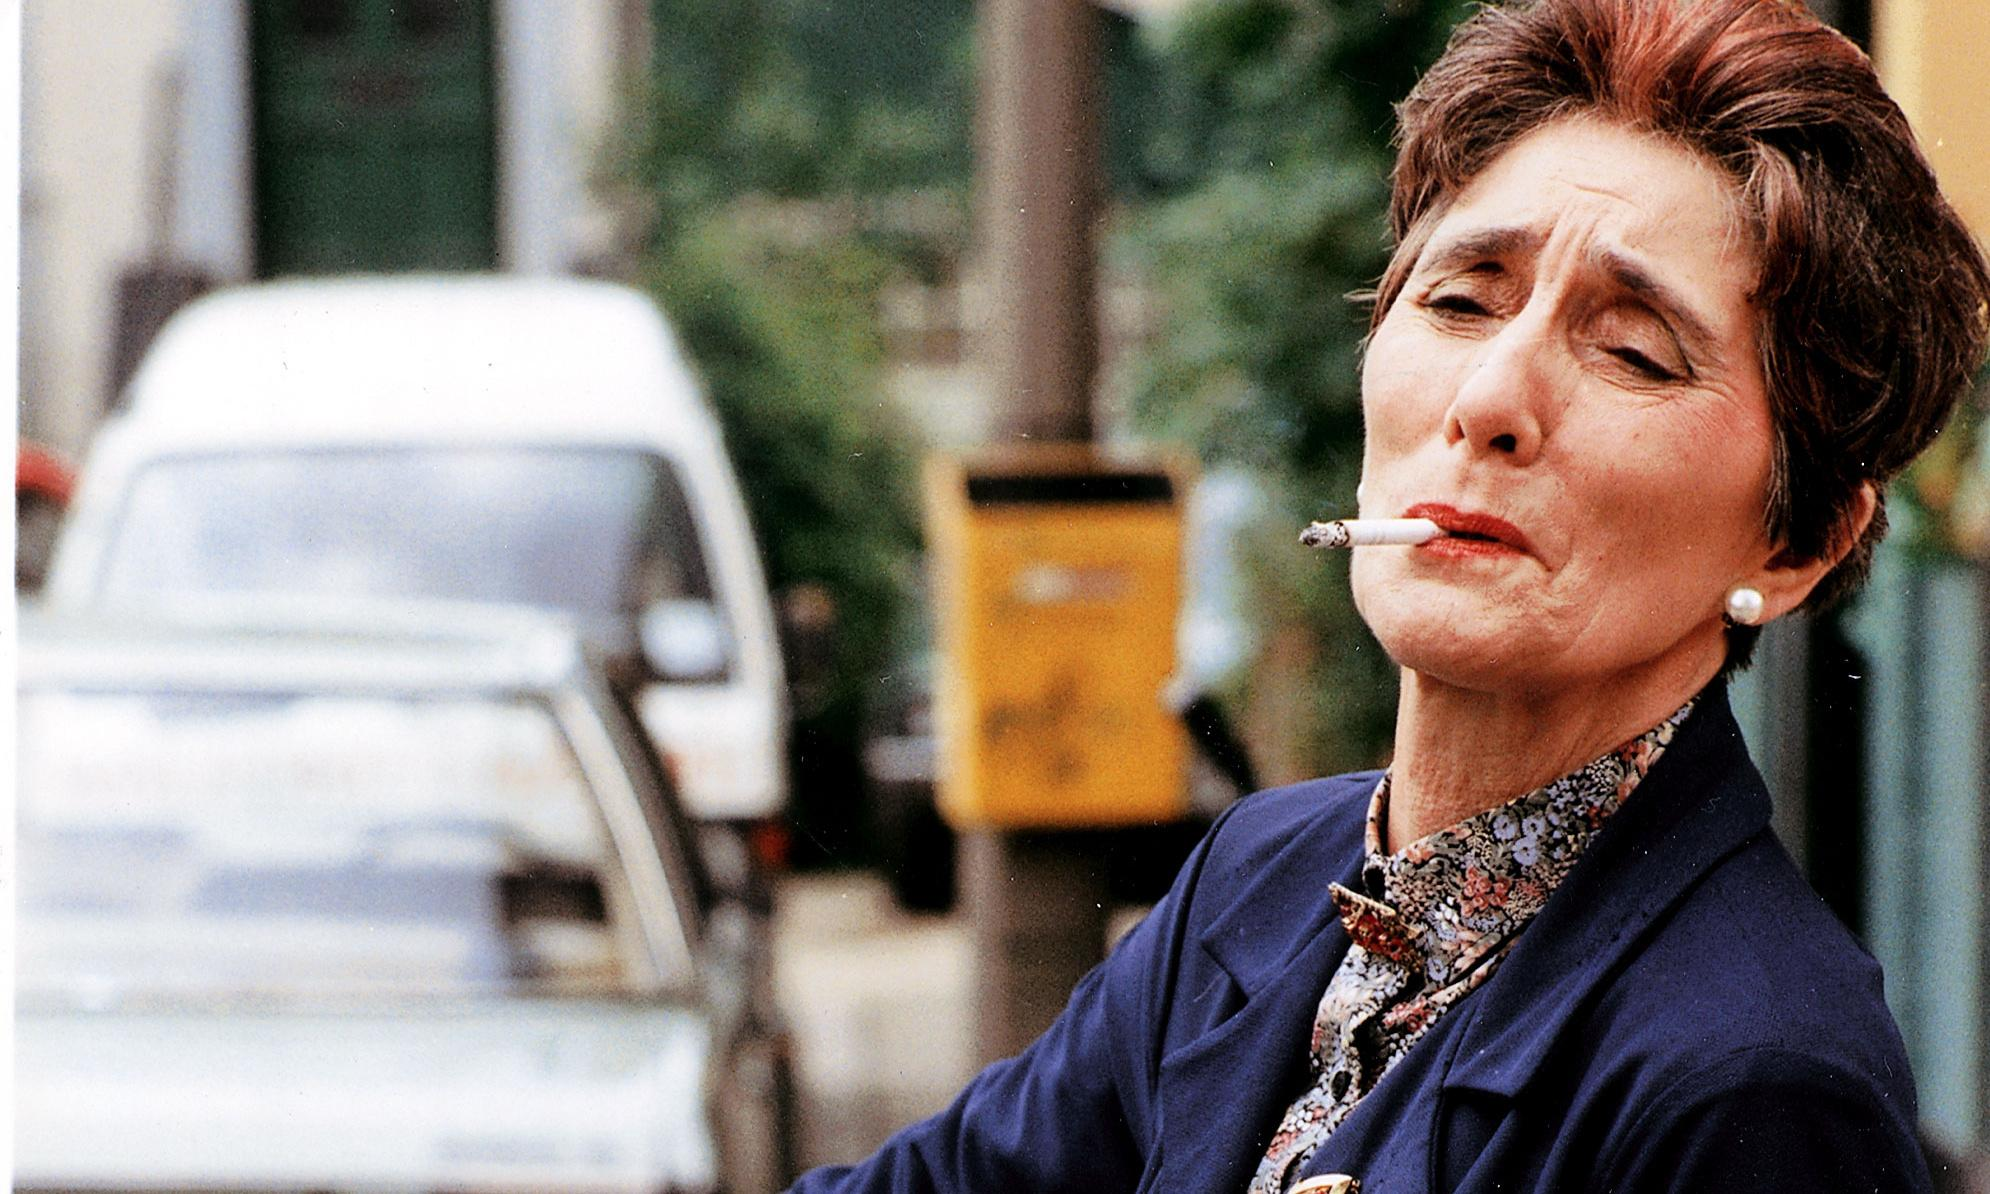 June Brown says she's played EastEnders' Dot Cotton for last time